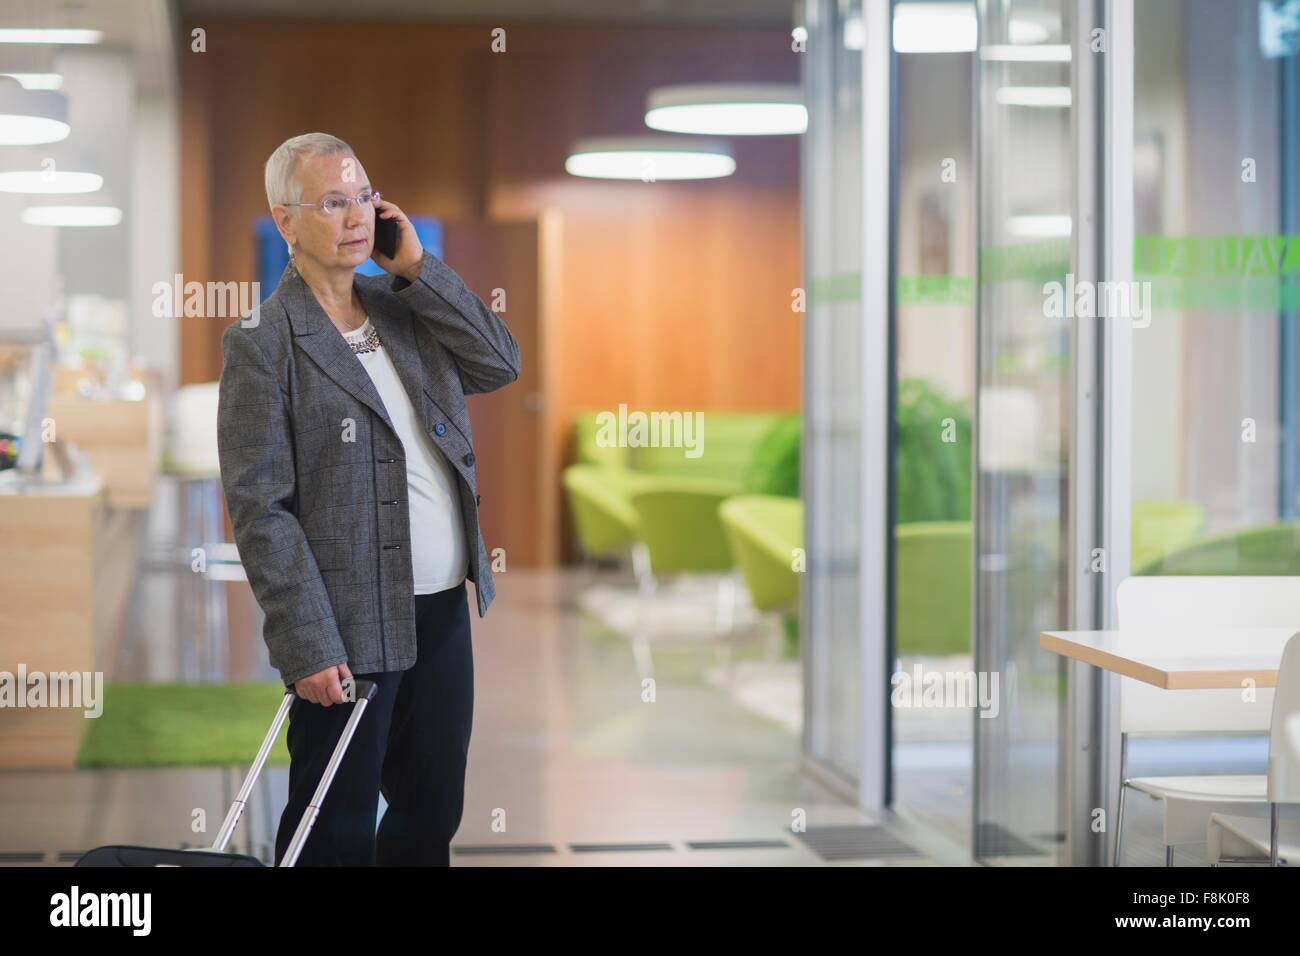 Senior businesswoman with wheeled suitcase chatting on smartphone in hotel lobby - Stock Image